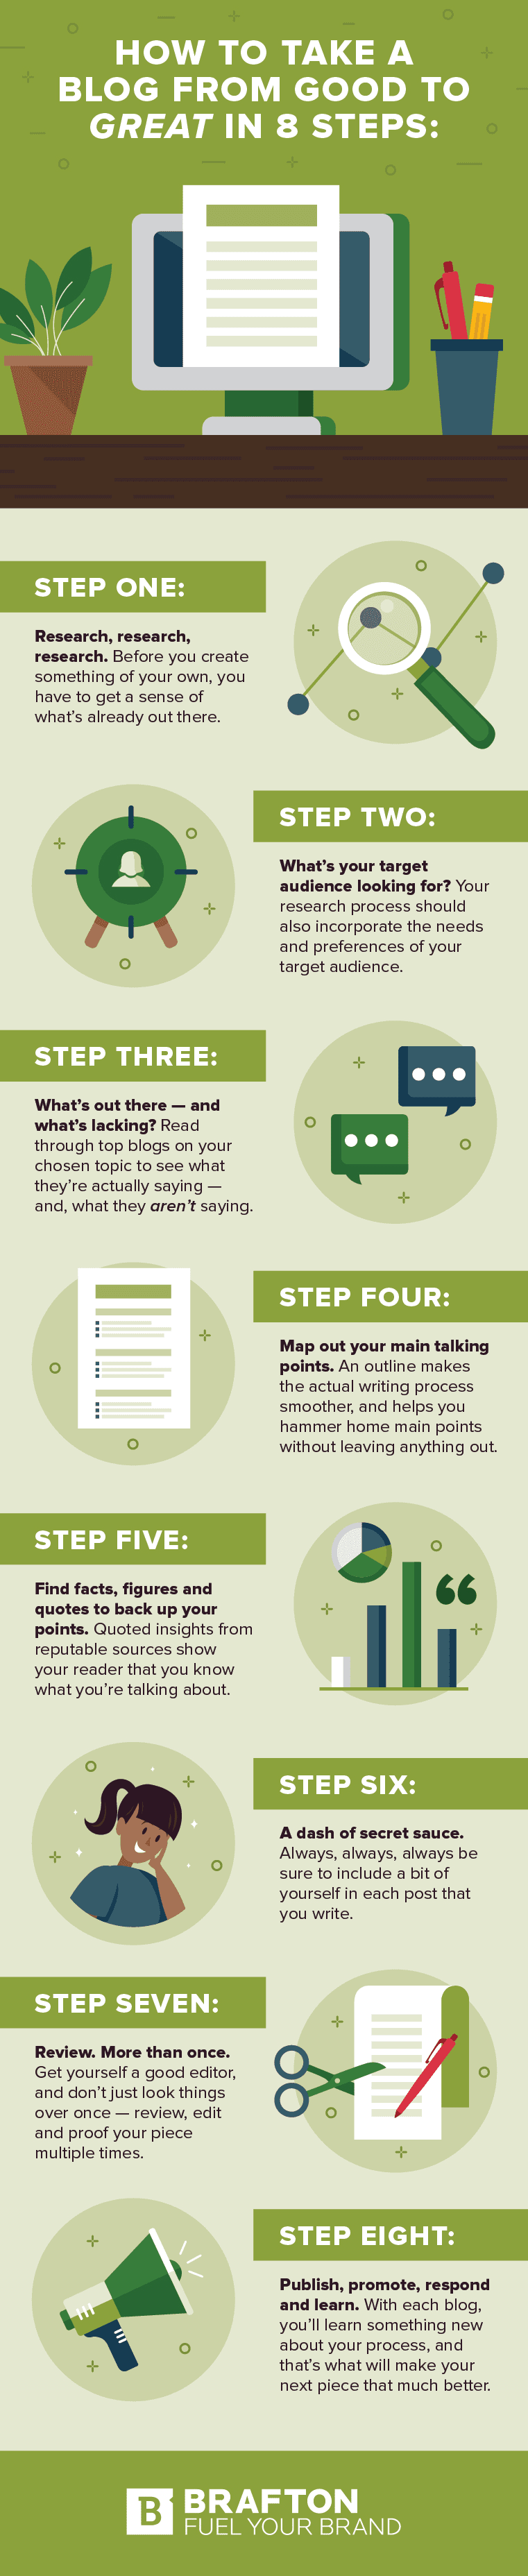 How to write a good blog post [infographic], The Secret Sauce to Writing a Perfect Blog Post - infographic